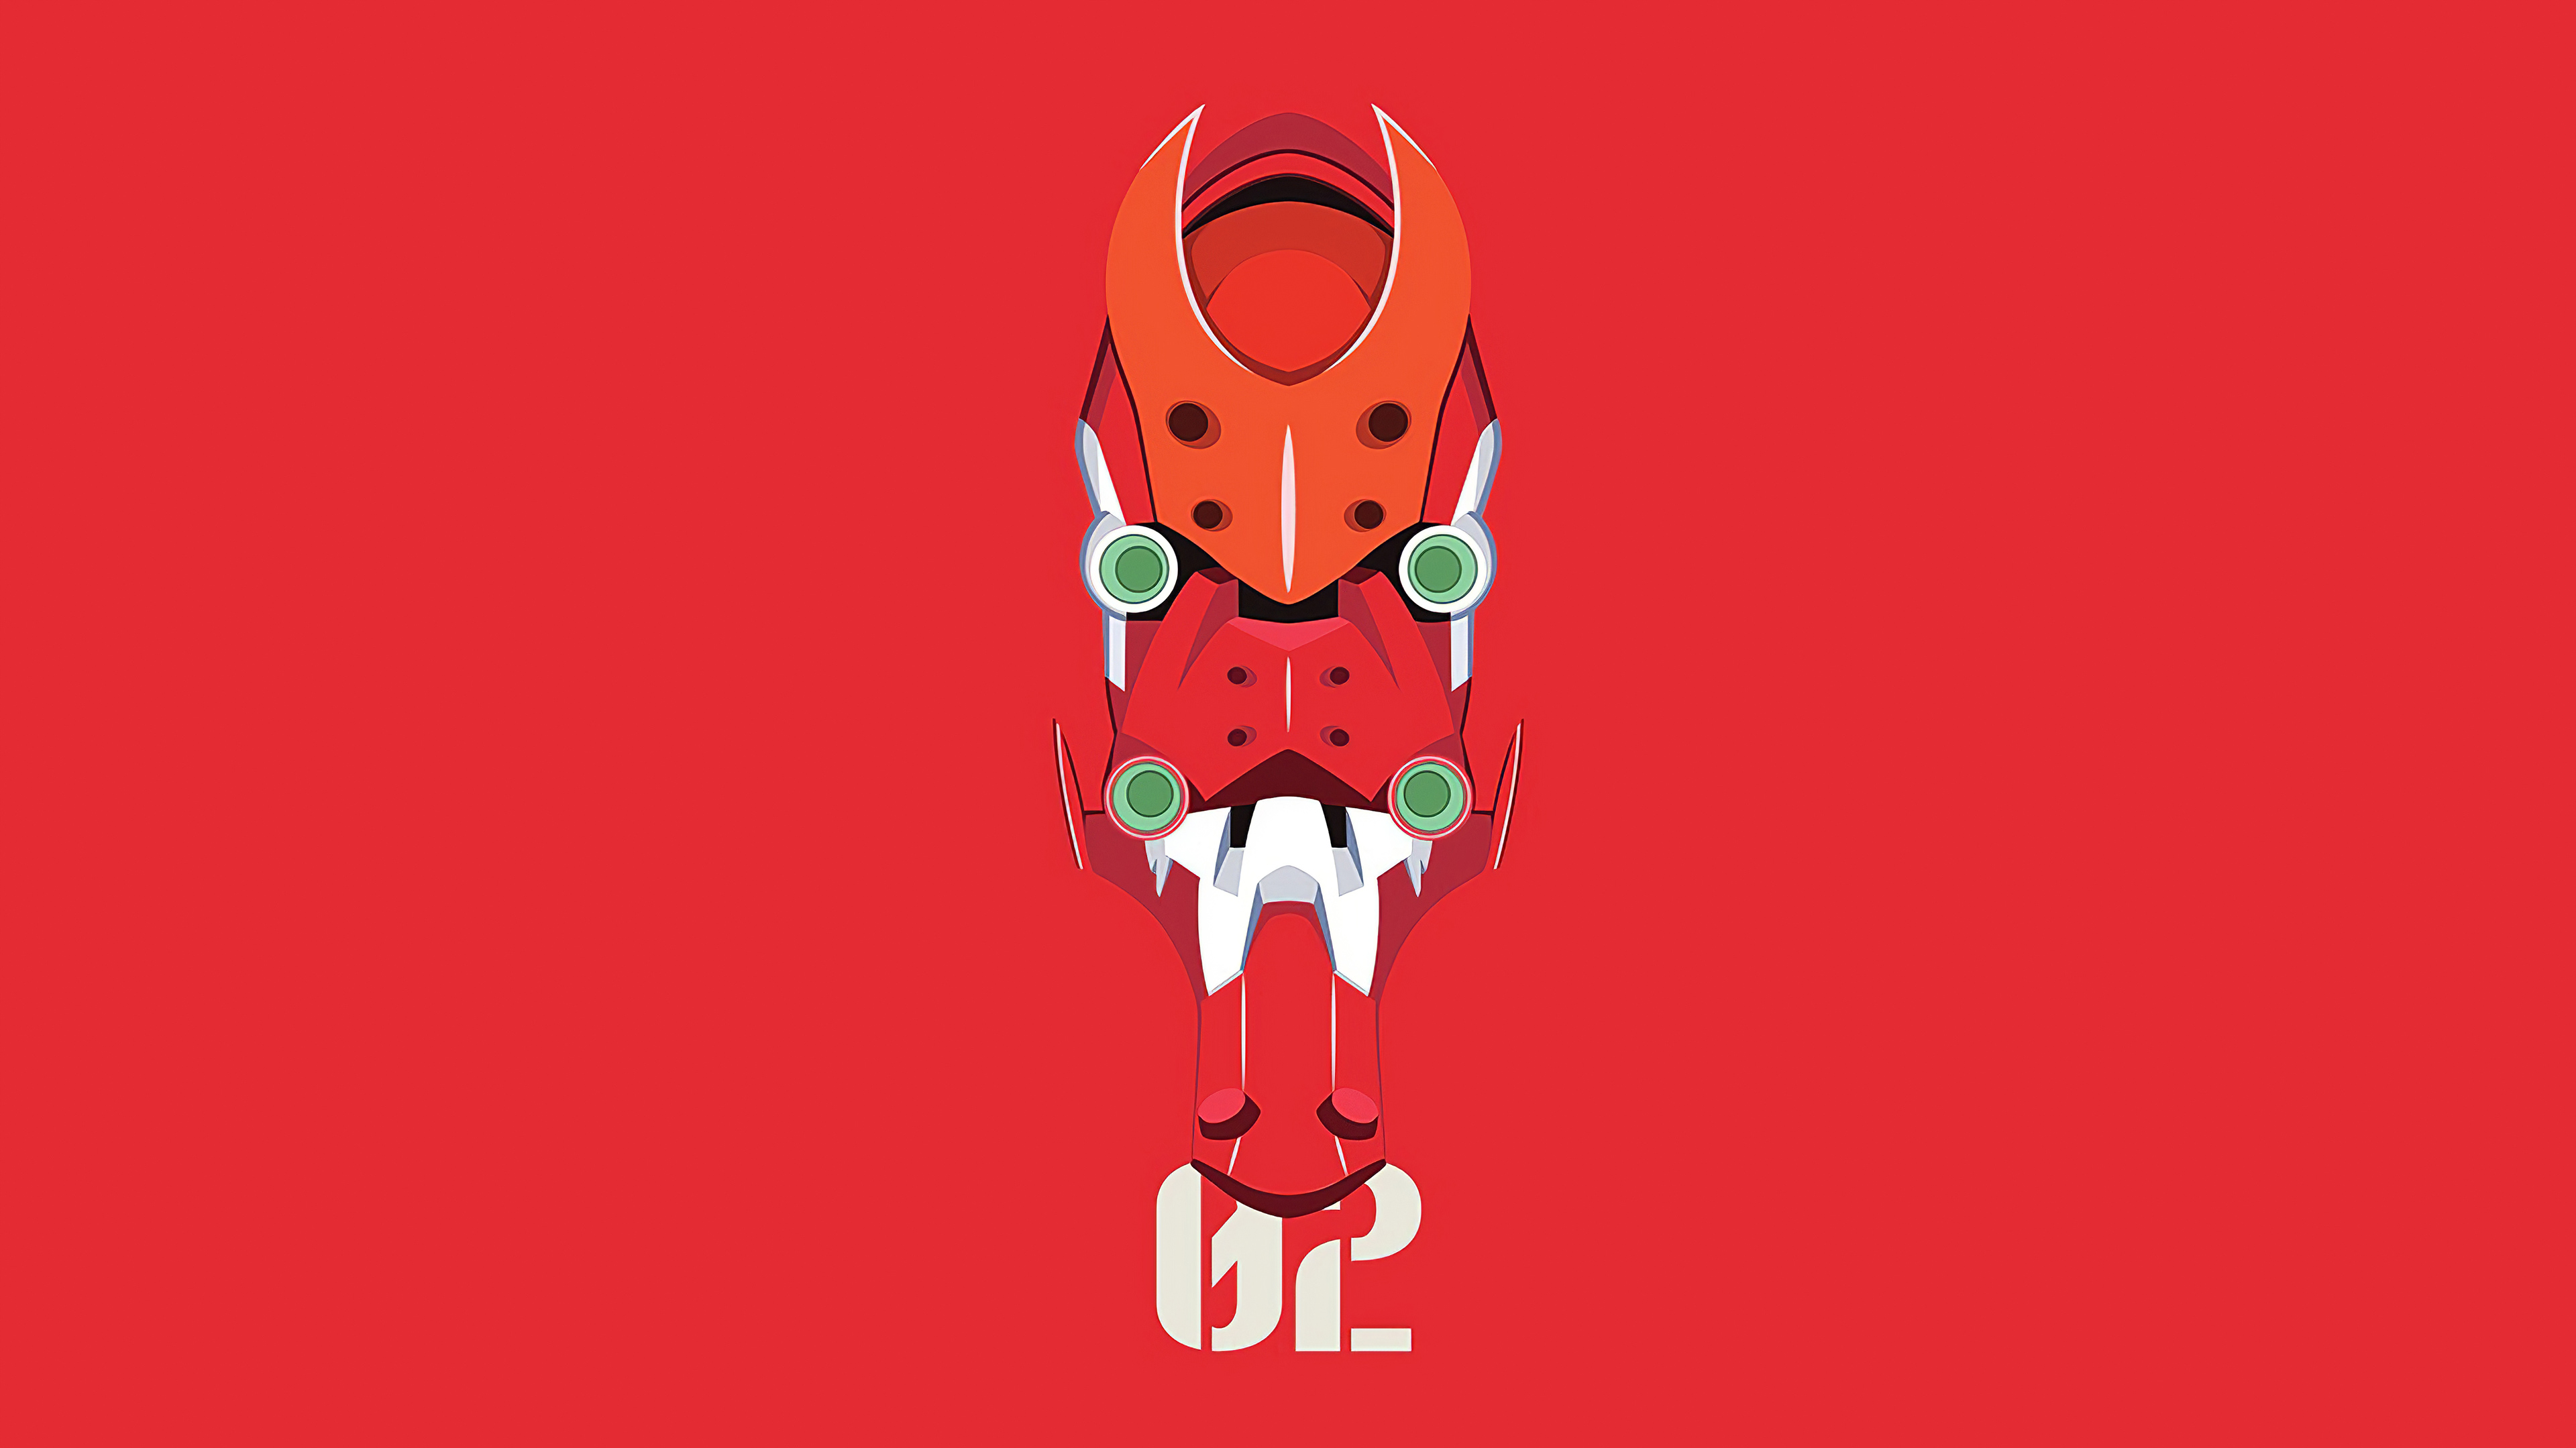 Neon Genesis Evangelion Eva Unit 02 4k Hd Anime 4k Wallpapers Images Backgrounds Photos And Pictures